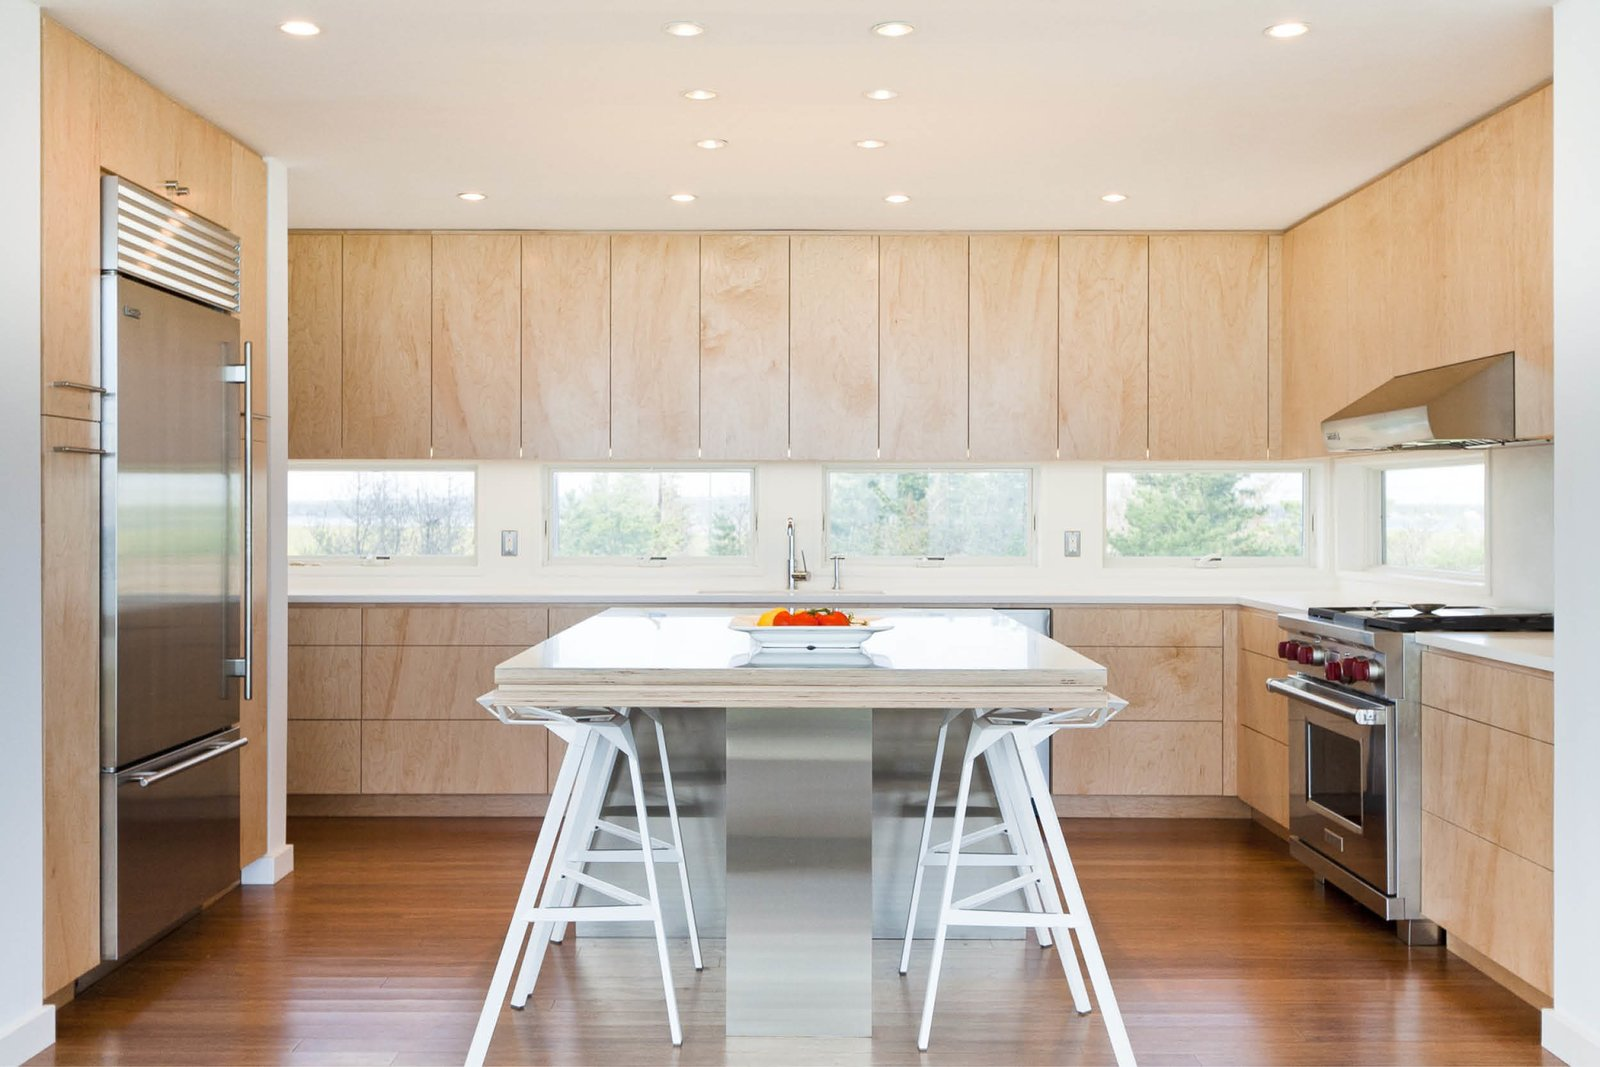 Medium Hardwood Floor, Ceiling Lighting, Range Hood, Engineered Quartz Counter, Refrigerator, Wall Oven, Cooktops, Drop In Sink, Wood Cabinet, Stools, and Dining Room Kitchen cabinets and horizontal slot windows frame views of the bay to the north  Dune Road Beach House by Resolution: 4 Architecture